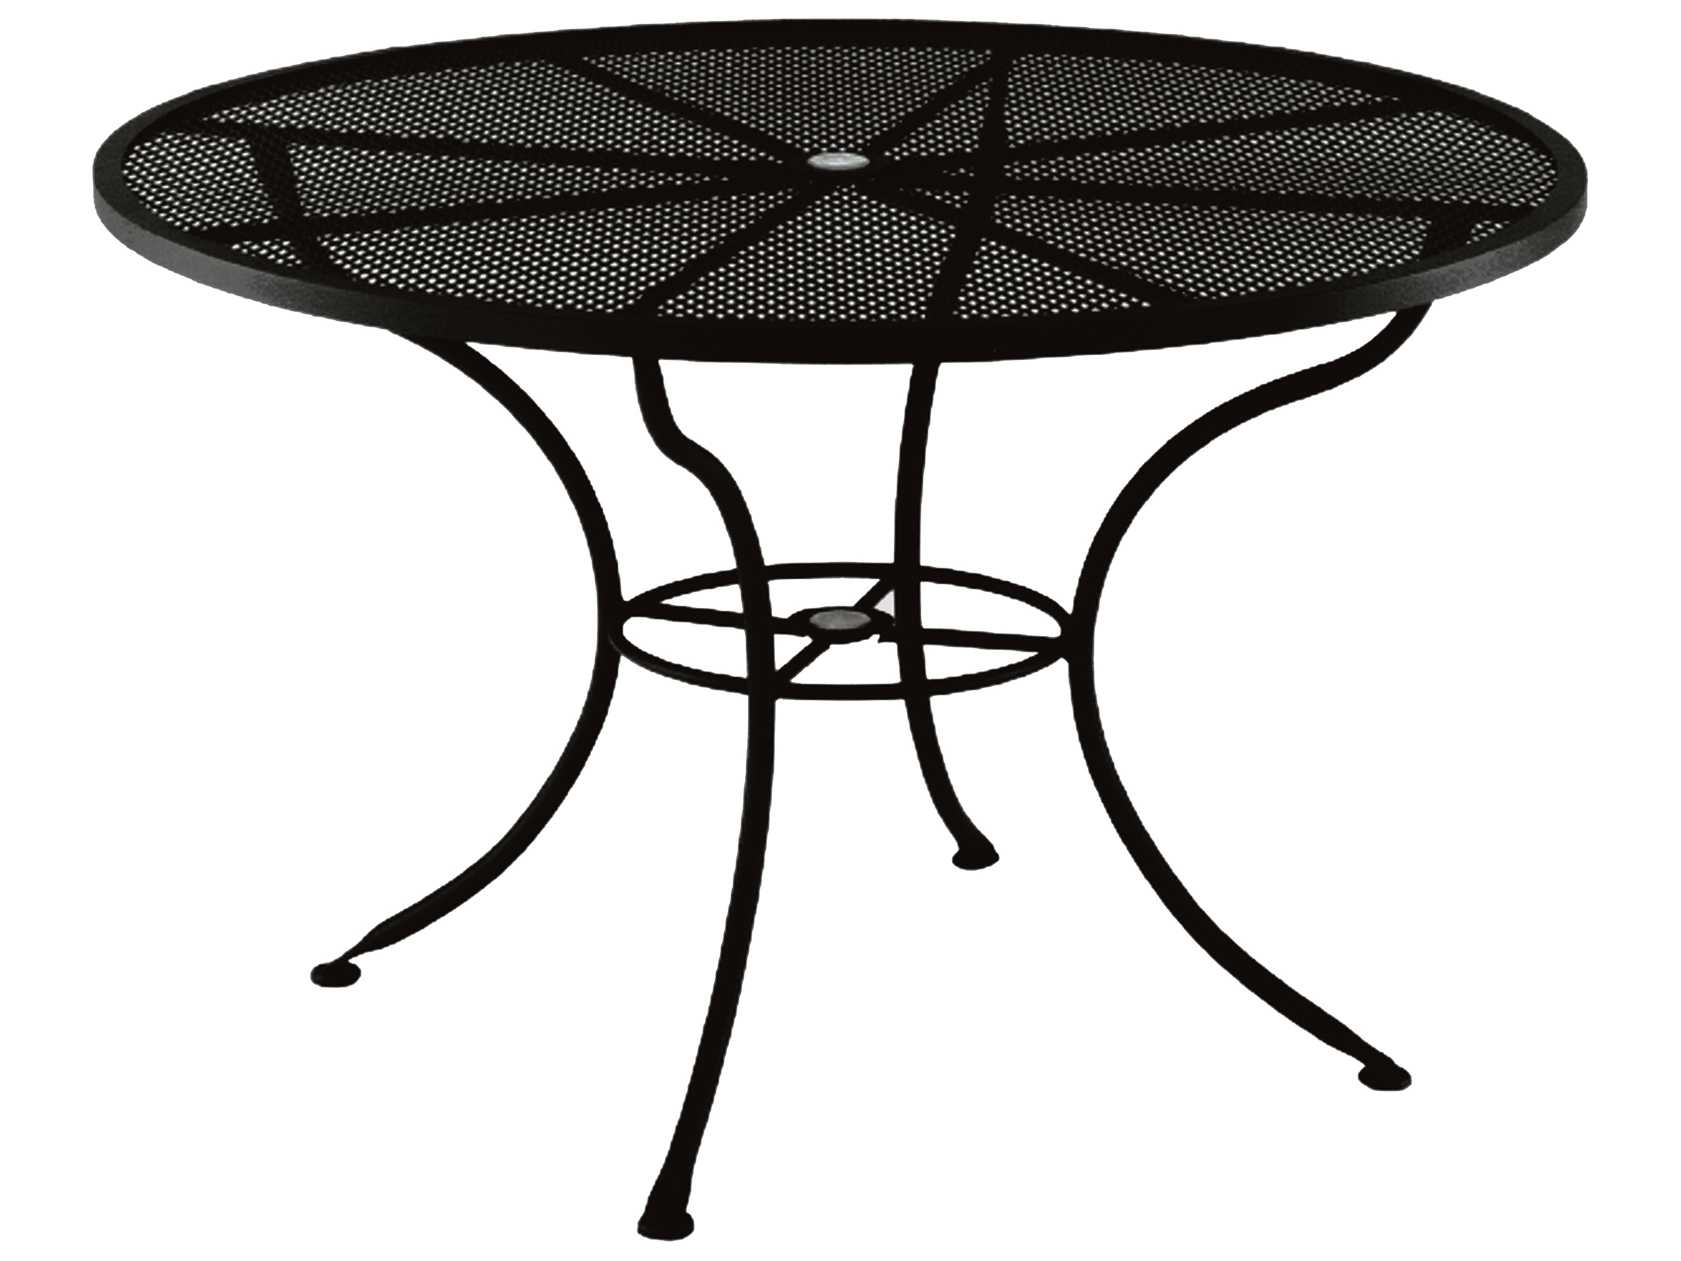 Ow Lee Mesh Wrought Iron 60 Round Dining Table With